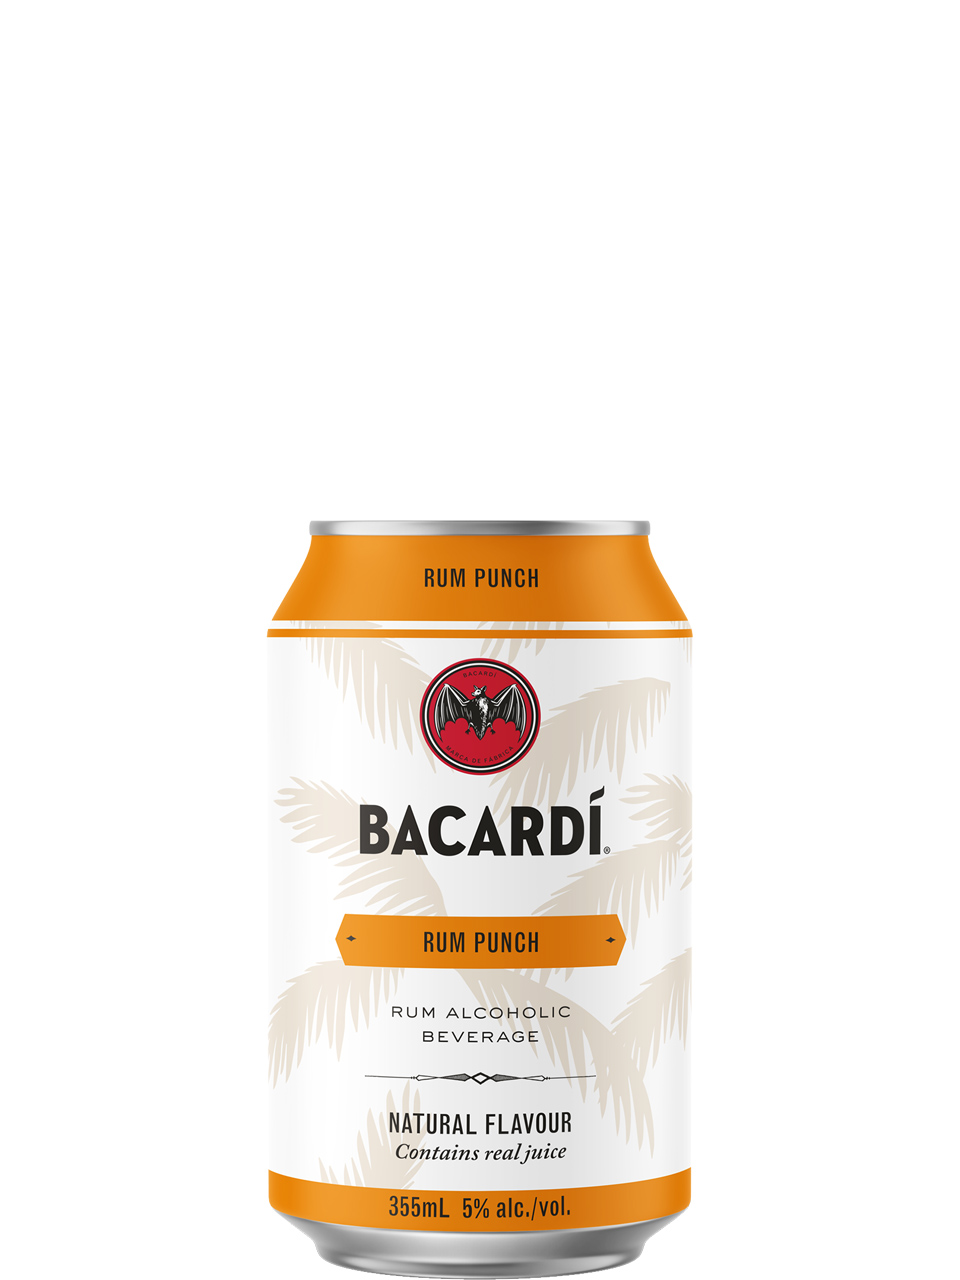 Bacardi Rum Punch 6 Pack Cans